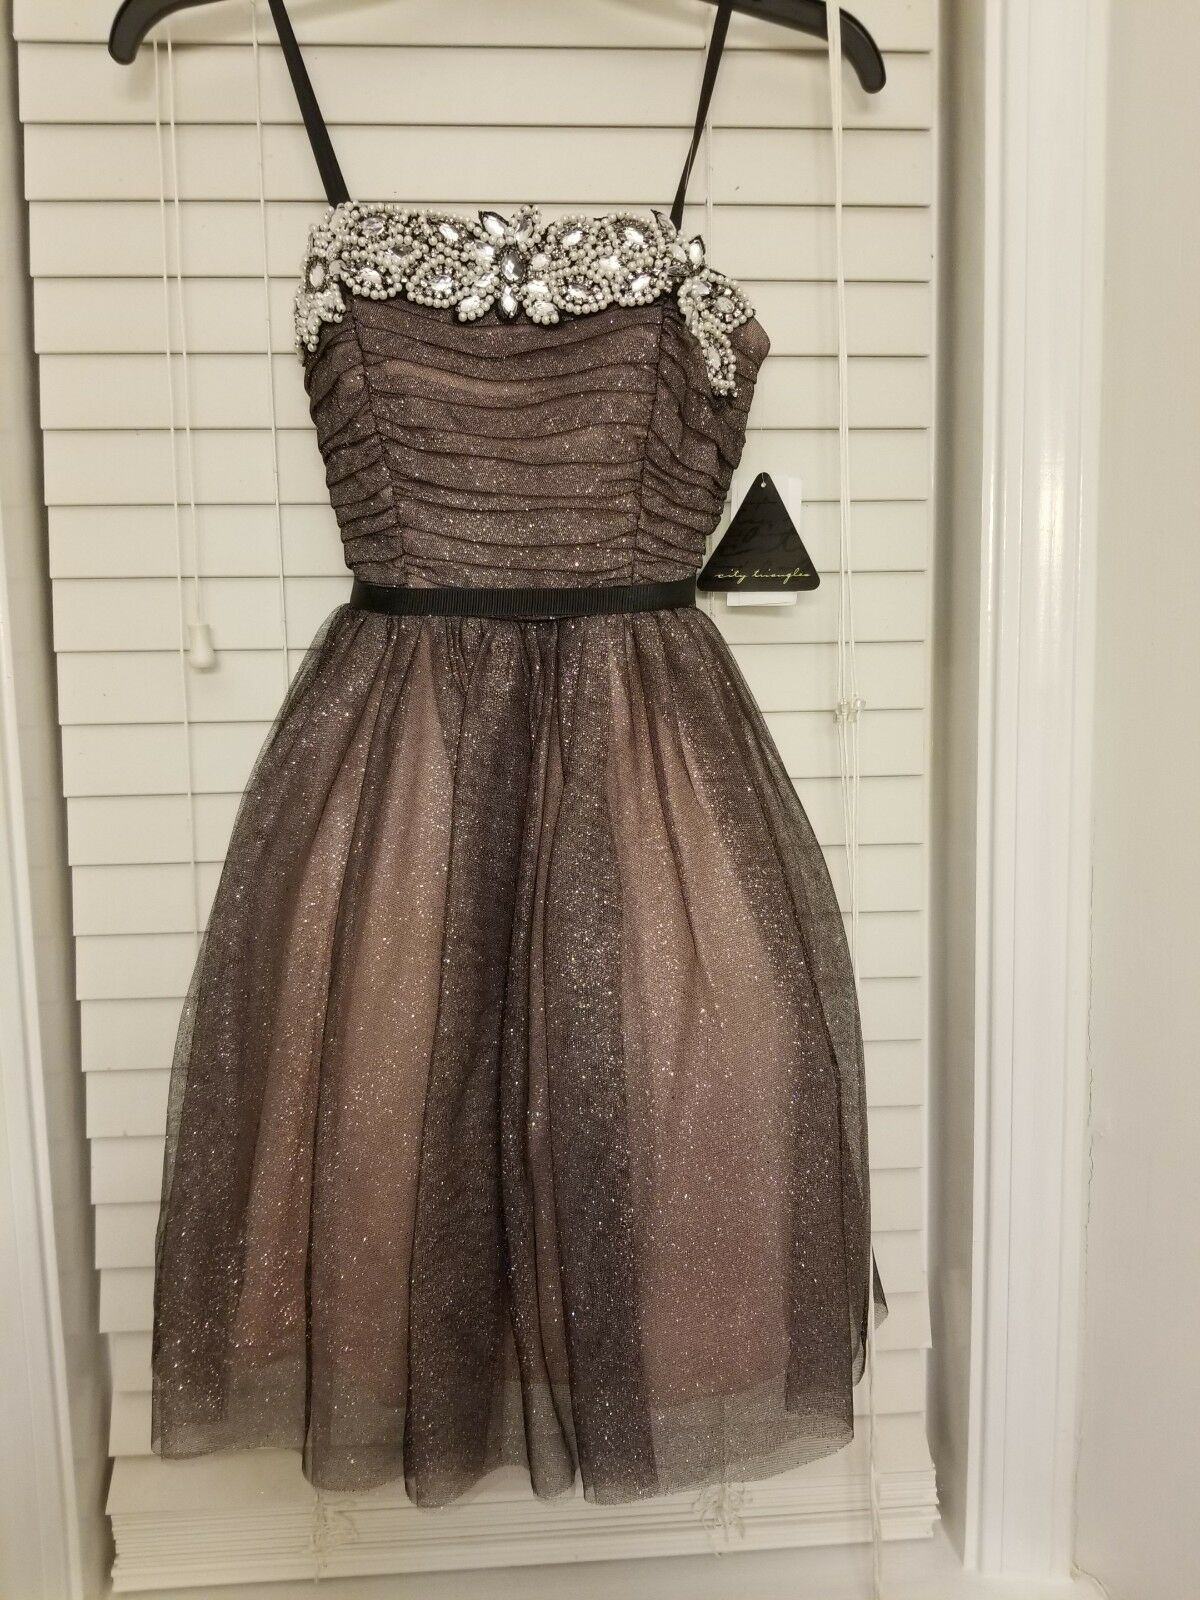 Nwt juniors size 11 pink prom cocktail party semi formal